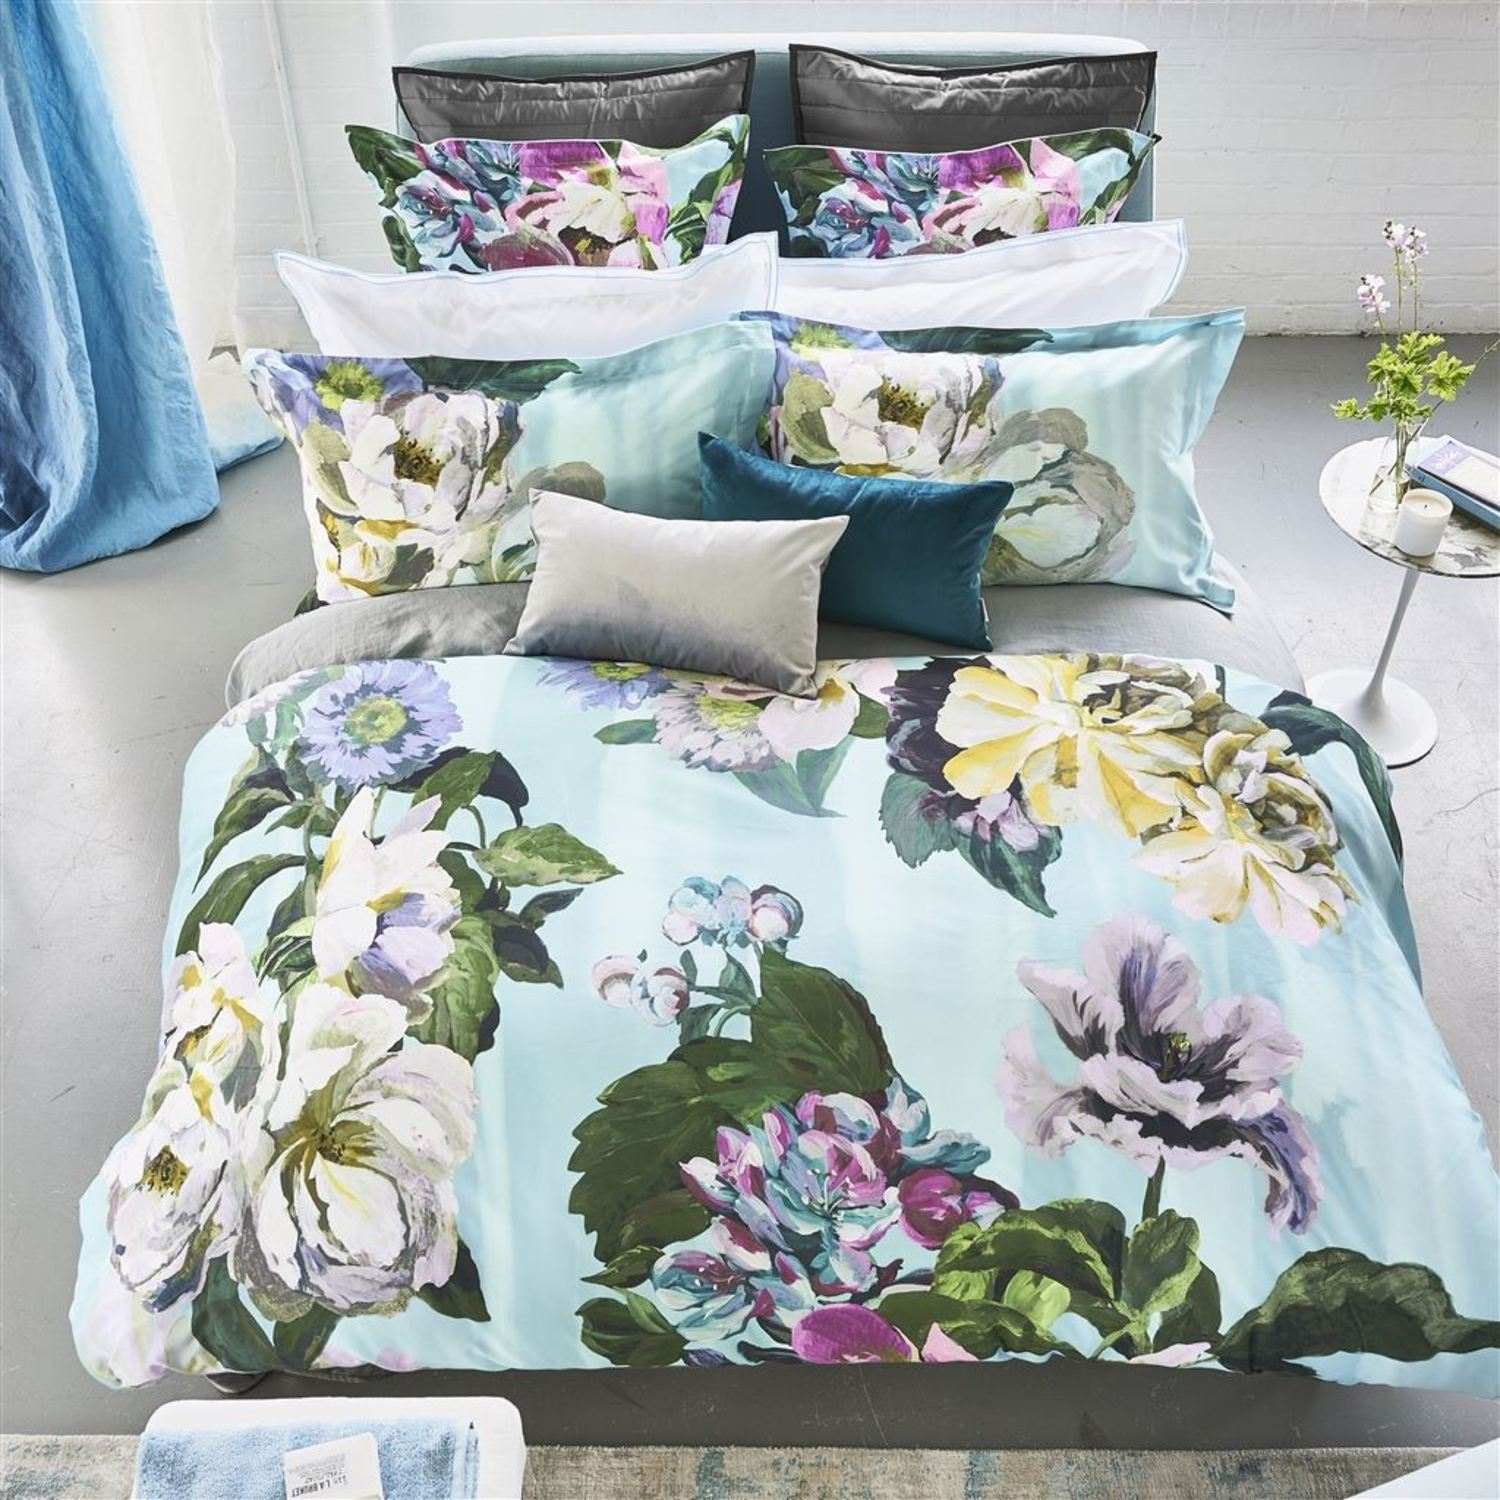 Delft Flower Sky By Designers Guild Bedding Beddingsuperstore Com